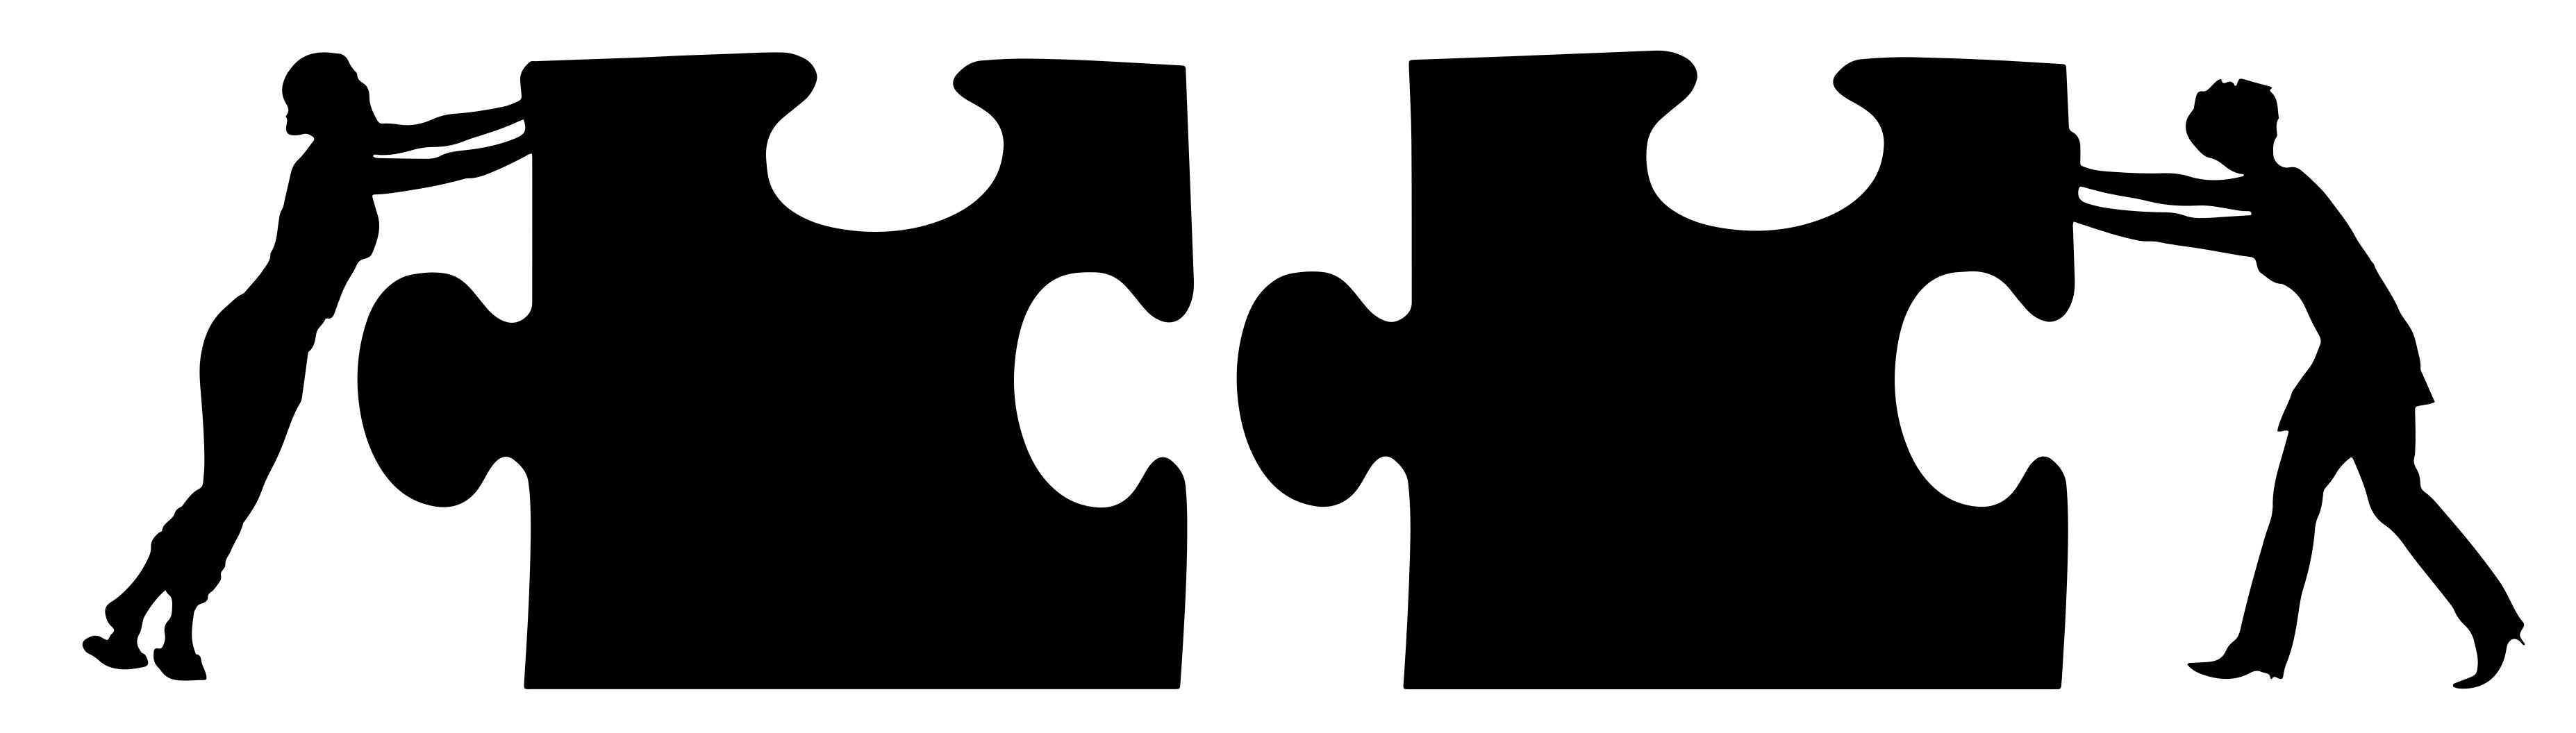 3709x1056 Two Women, Two Puzzle Pieces Silhouette Clipart